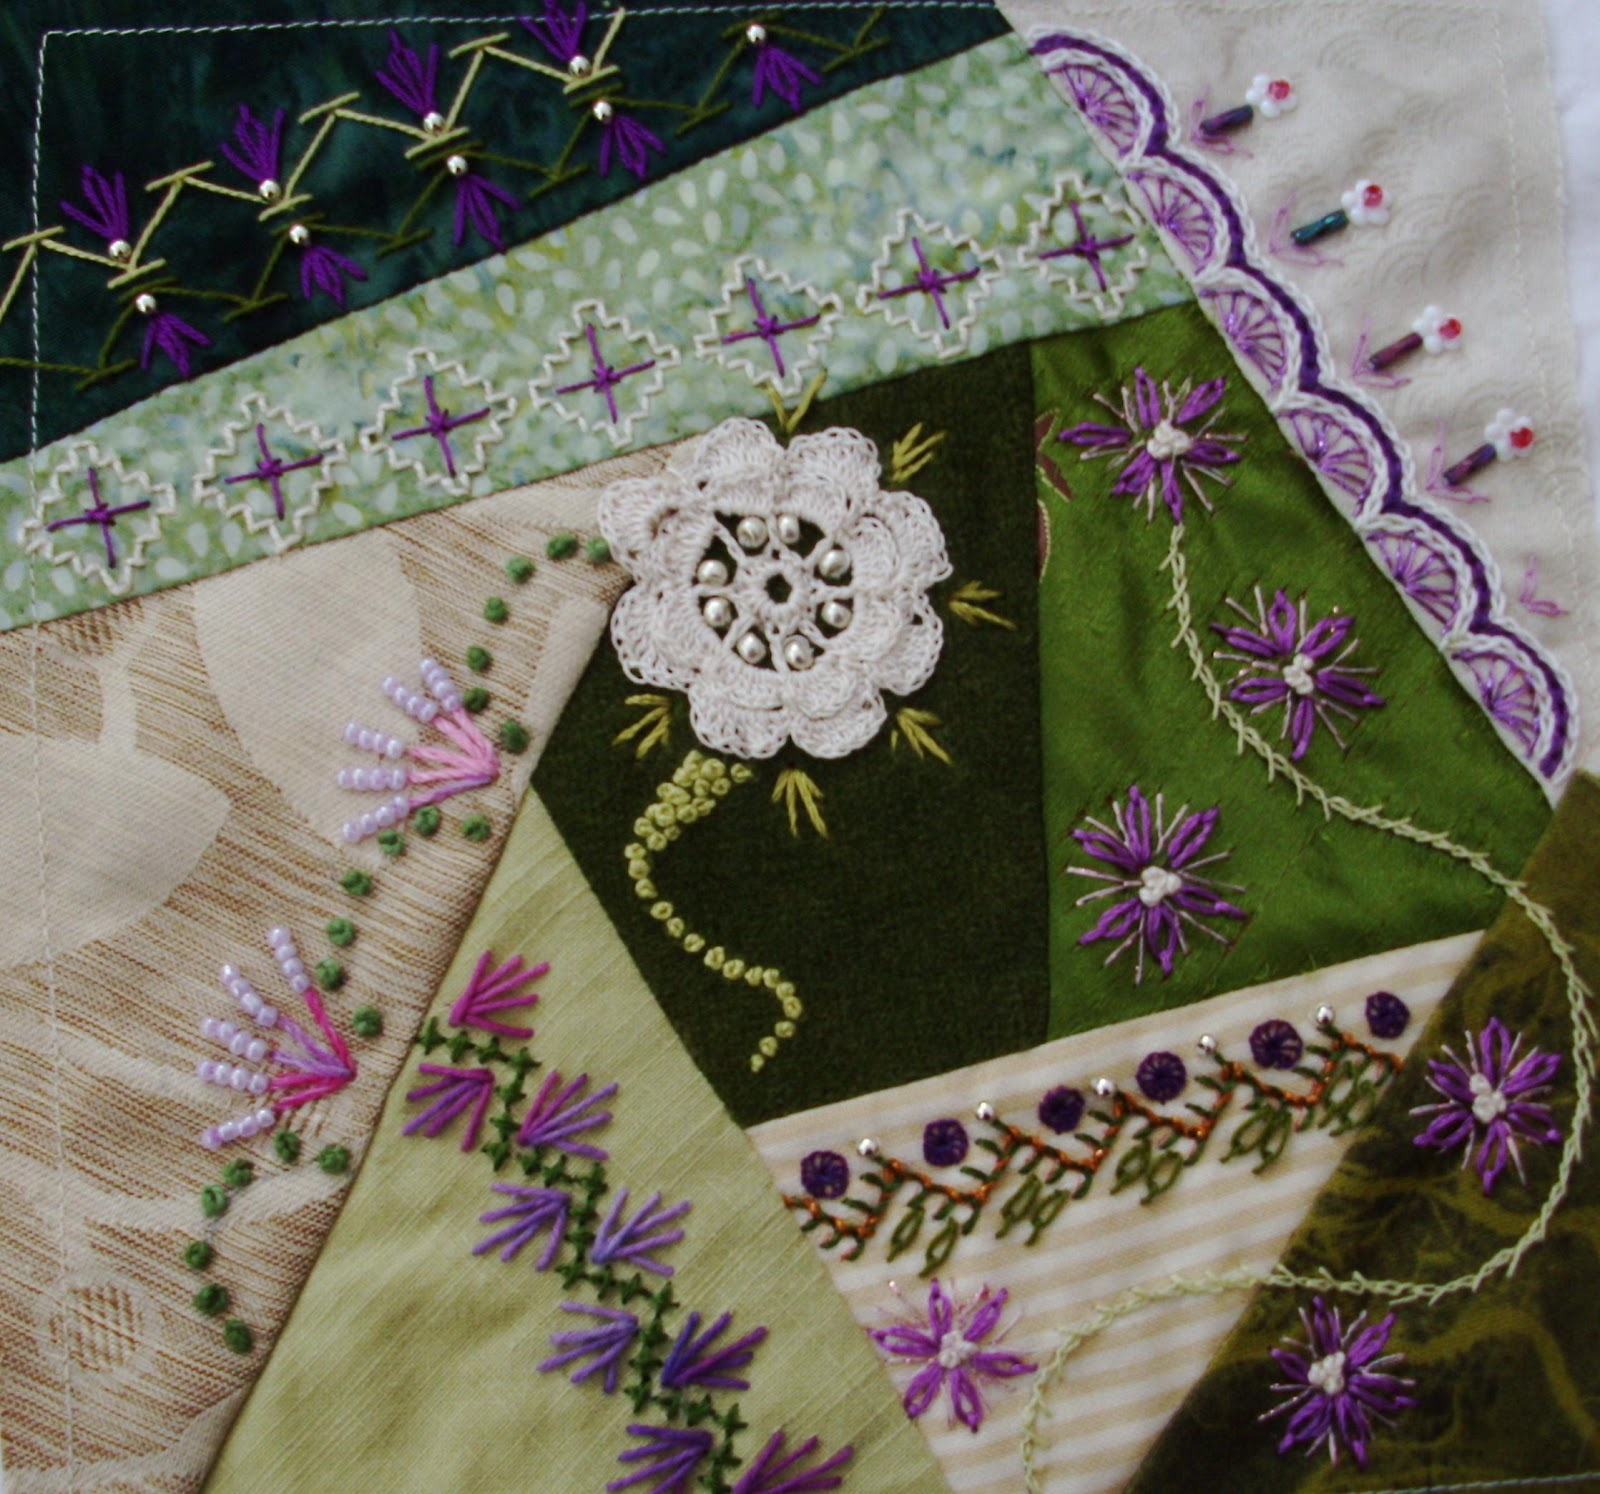 1000+ Images About Crazy Quilt Embroidery Stitches On Pinterest | Crazy Quilting Embroidery ...